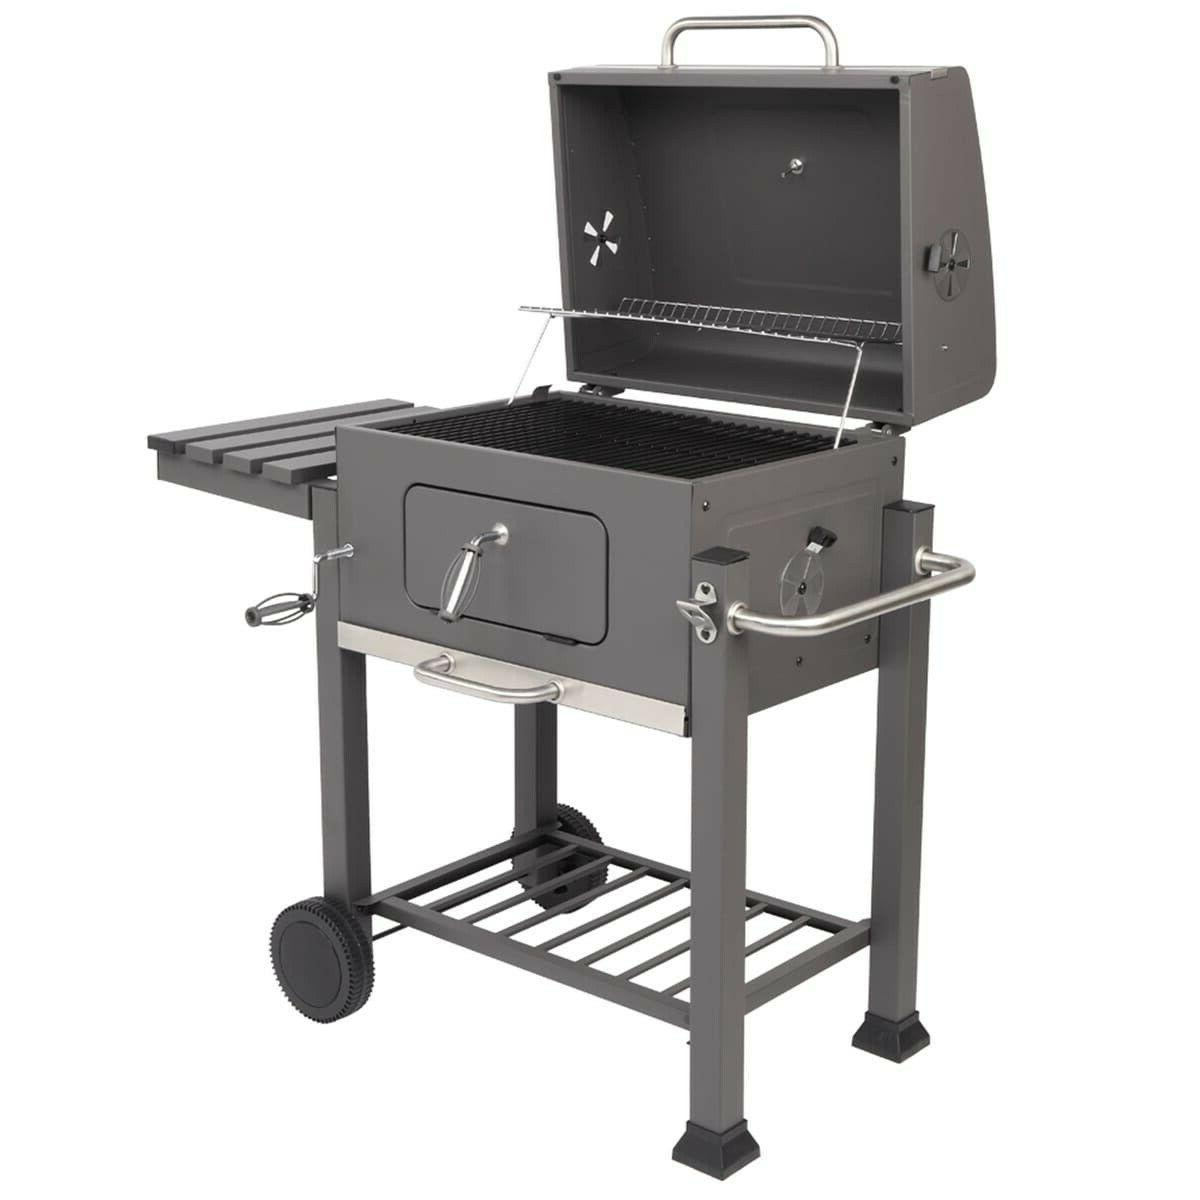 square oven charcoal oven plastic wheel